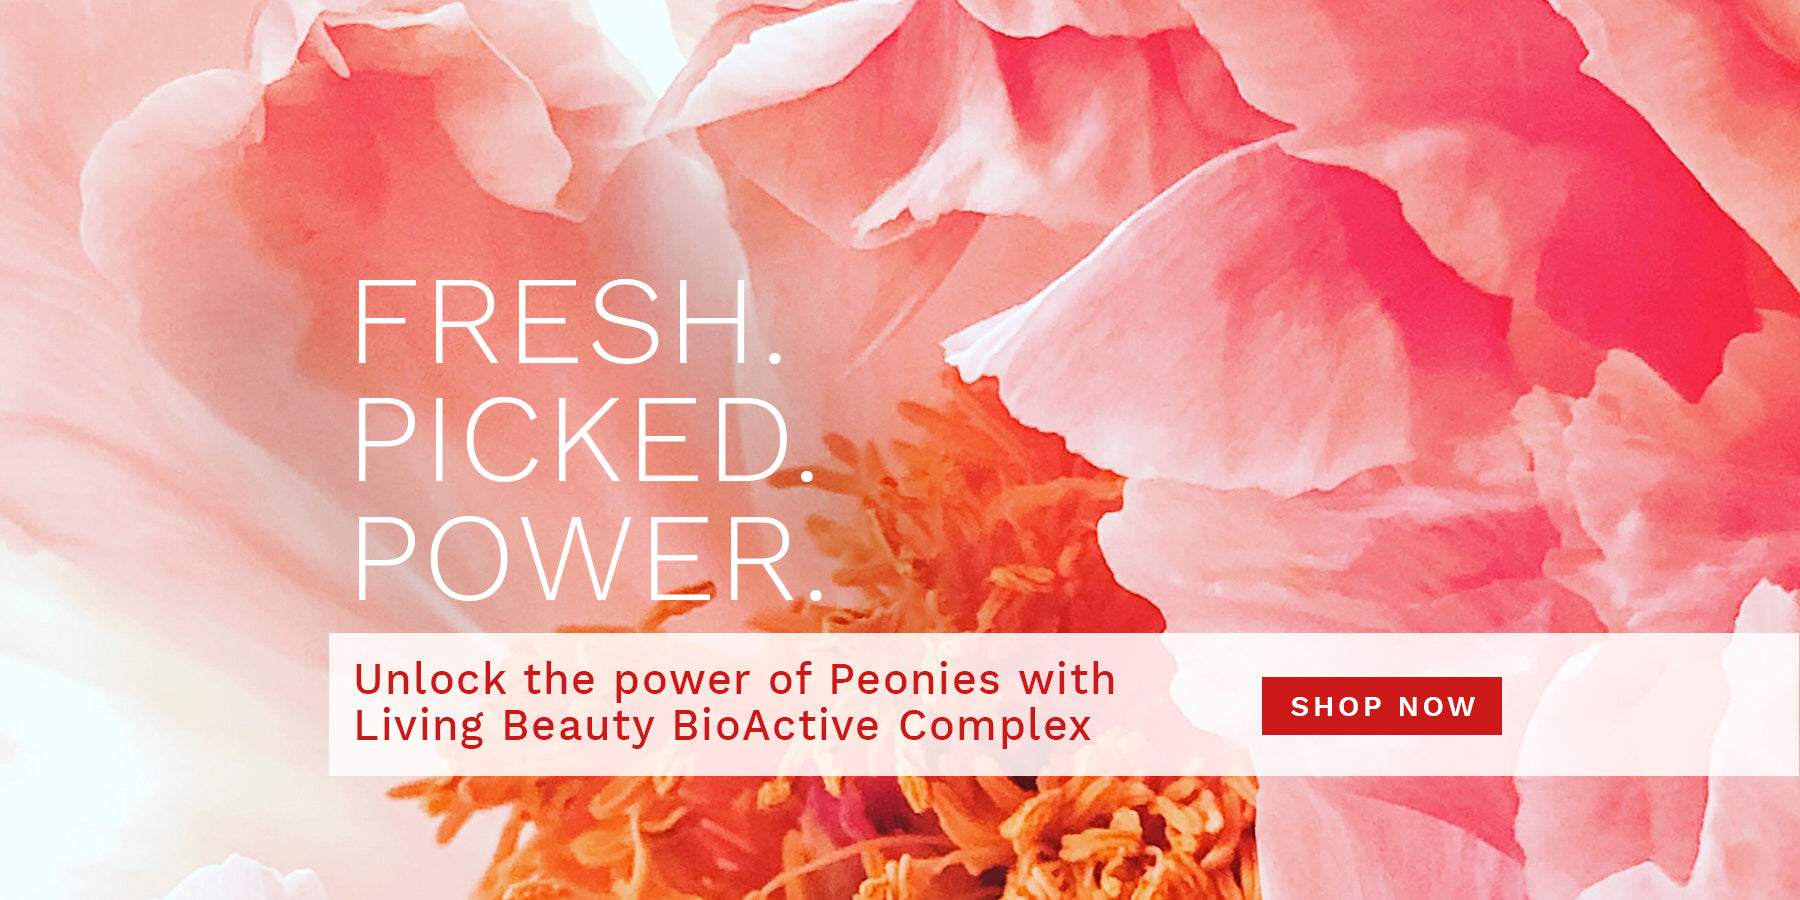 FRESH. PICKED. POWER. Unlock the power of Peonies with  Living Beauty Bio Active Complex: SHOP NOW